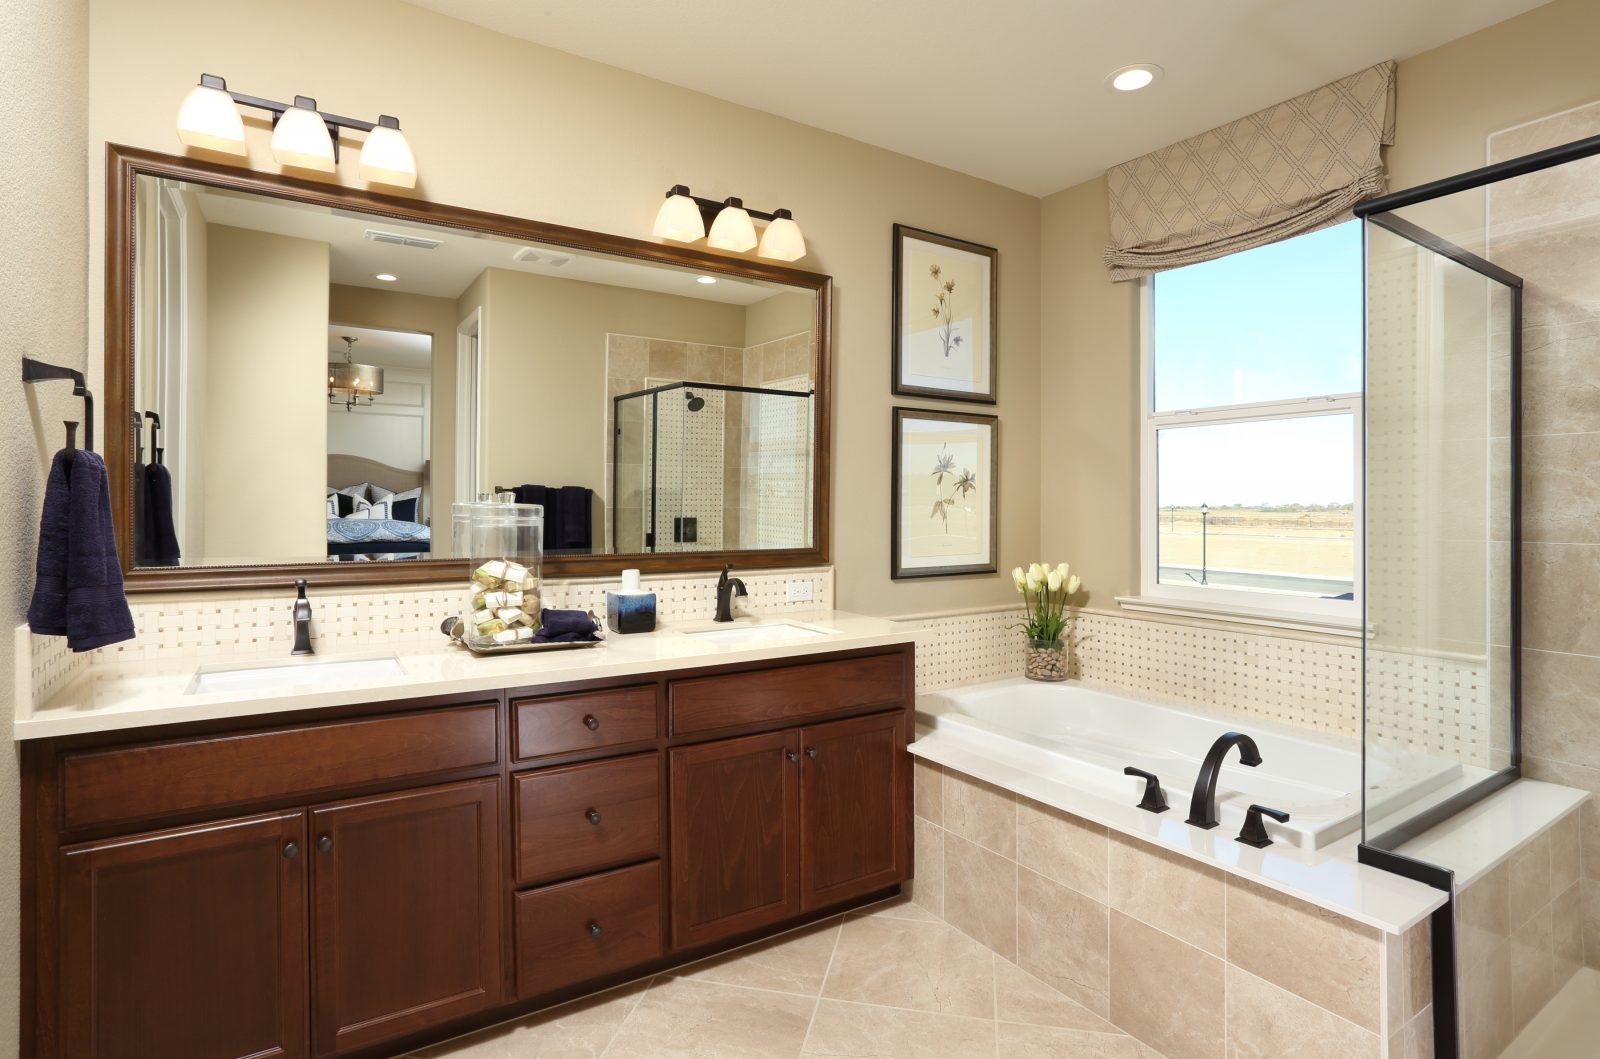 Master bathroom in new luxury home | Merritt at Emerson Ranch in Oakley, CA | Brookfield Residential